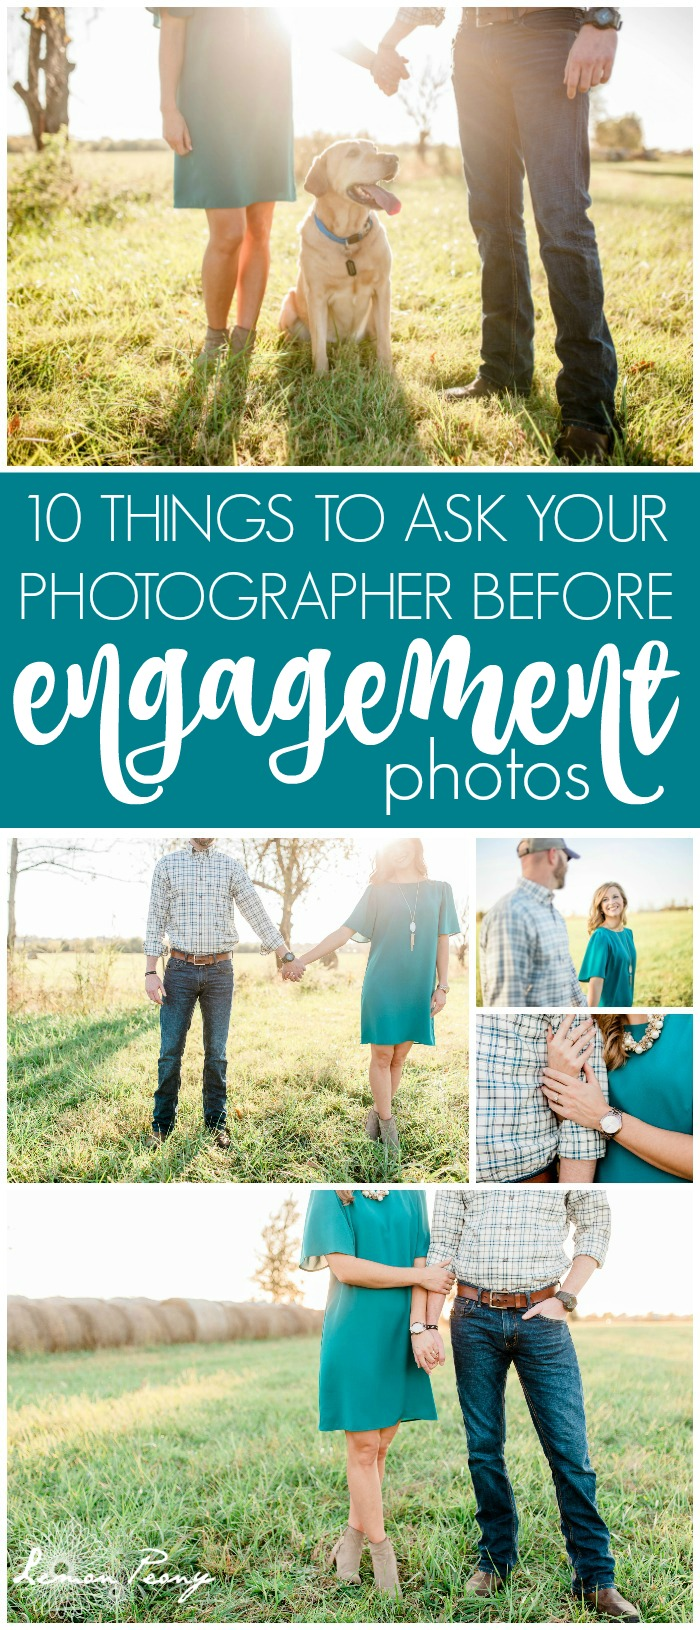 10 Things to Ask Your Photographer Before Engagement Pictures